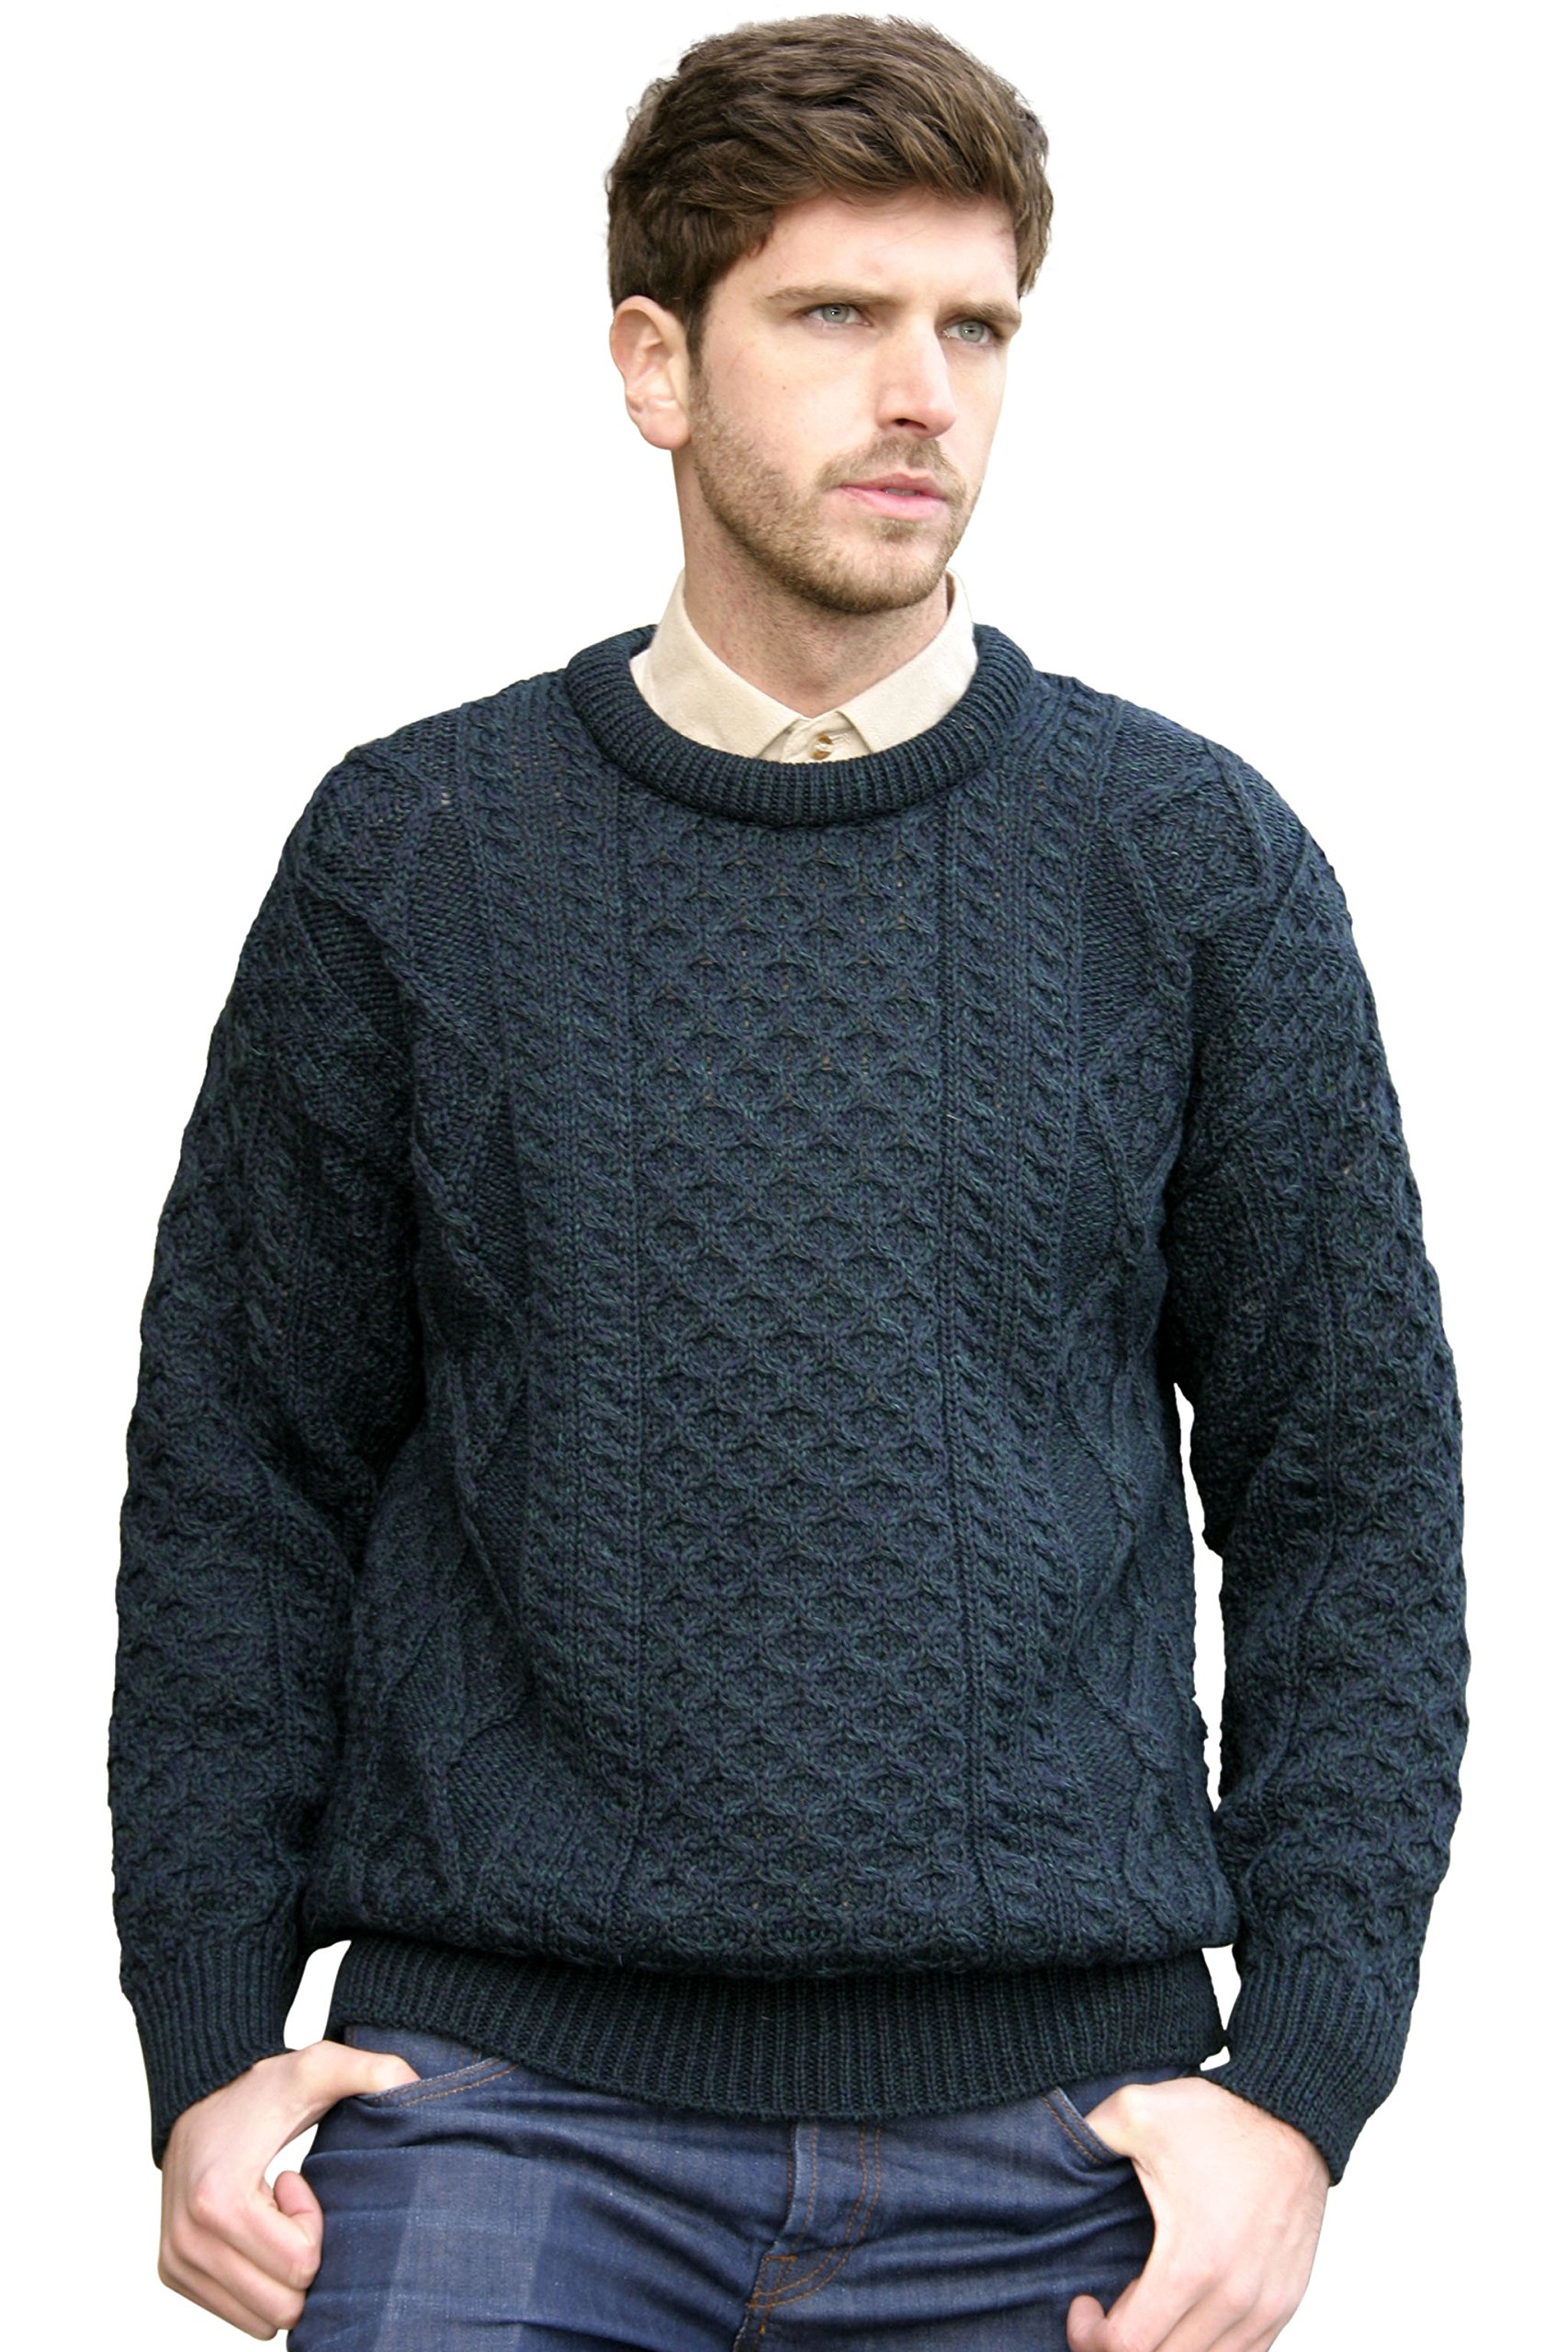 1a95b70954d216 West End Knitwear Other Brands Merino Wool Traditional Irish Aran Crew Neck  Sweater